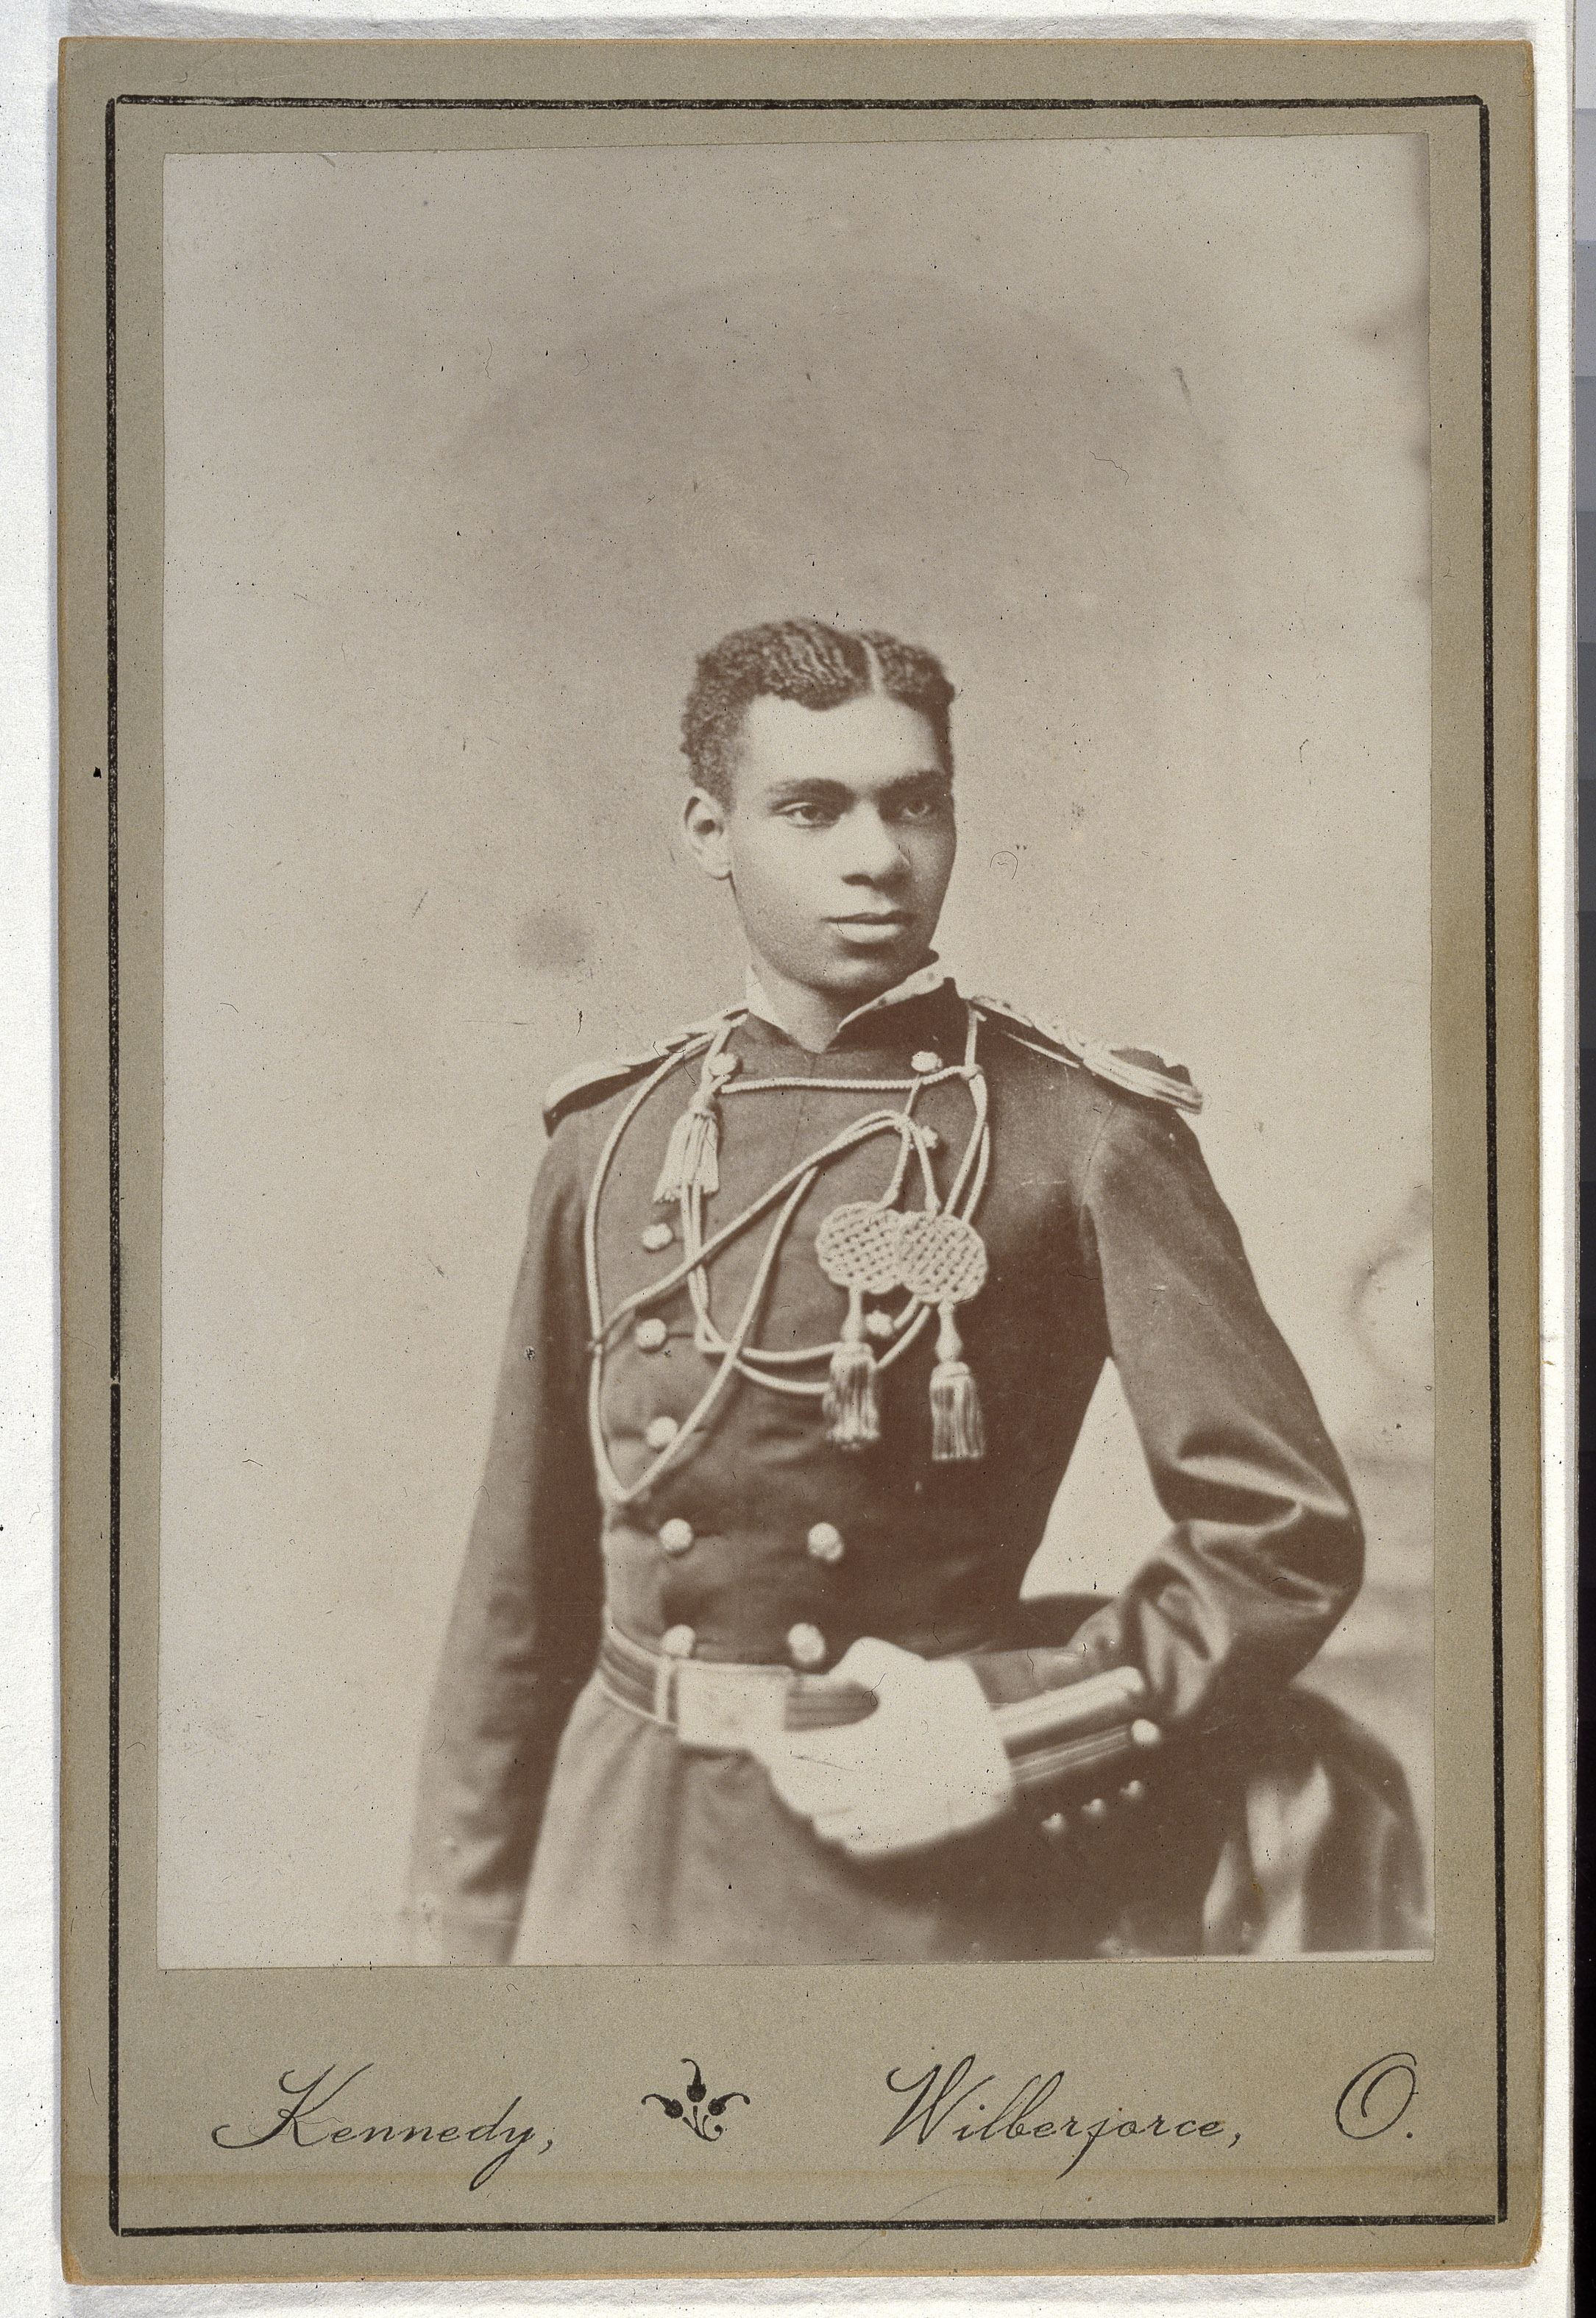 Henry Flipper, the first centaur in the United States Army.